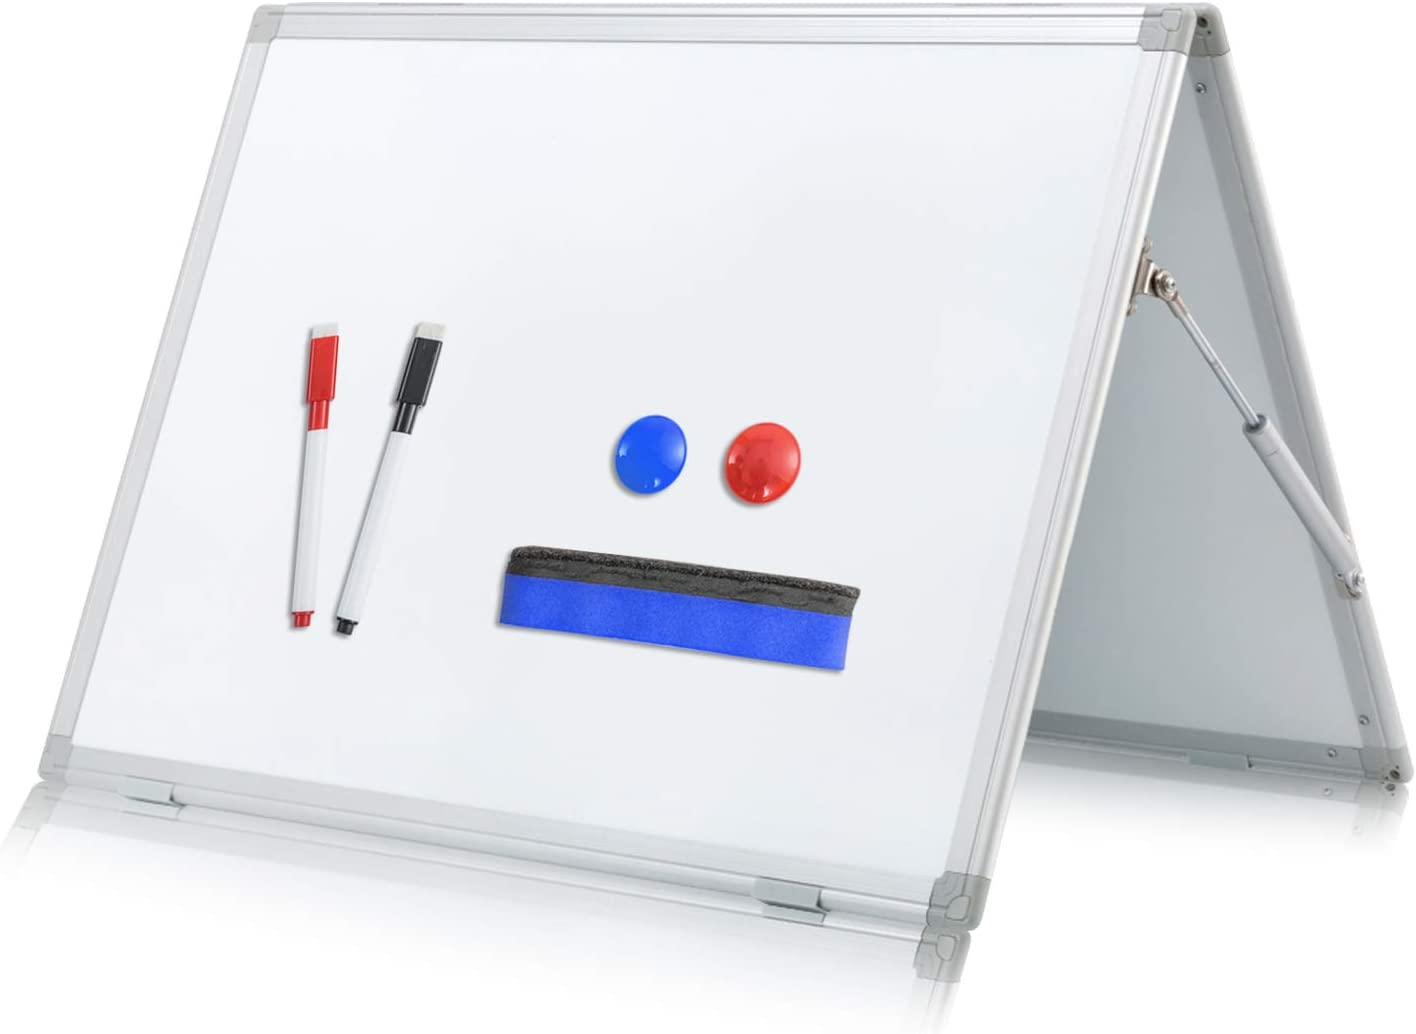 Small Dry Erase White Board -Mini Magnetic Desktop Portable Whiteboard Easel for Kids -Double Sided, Foldable, Protect Your Hands